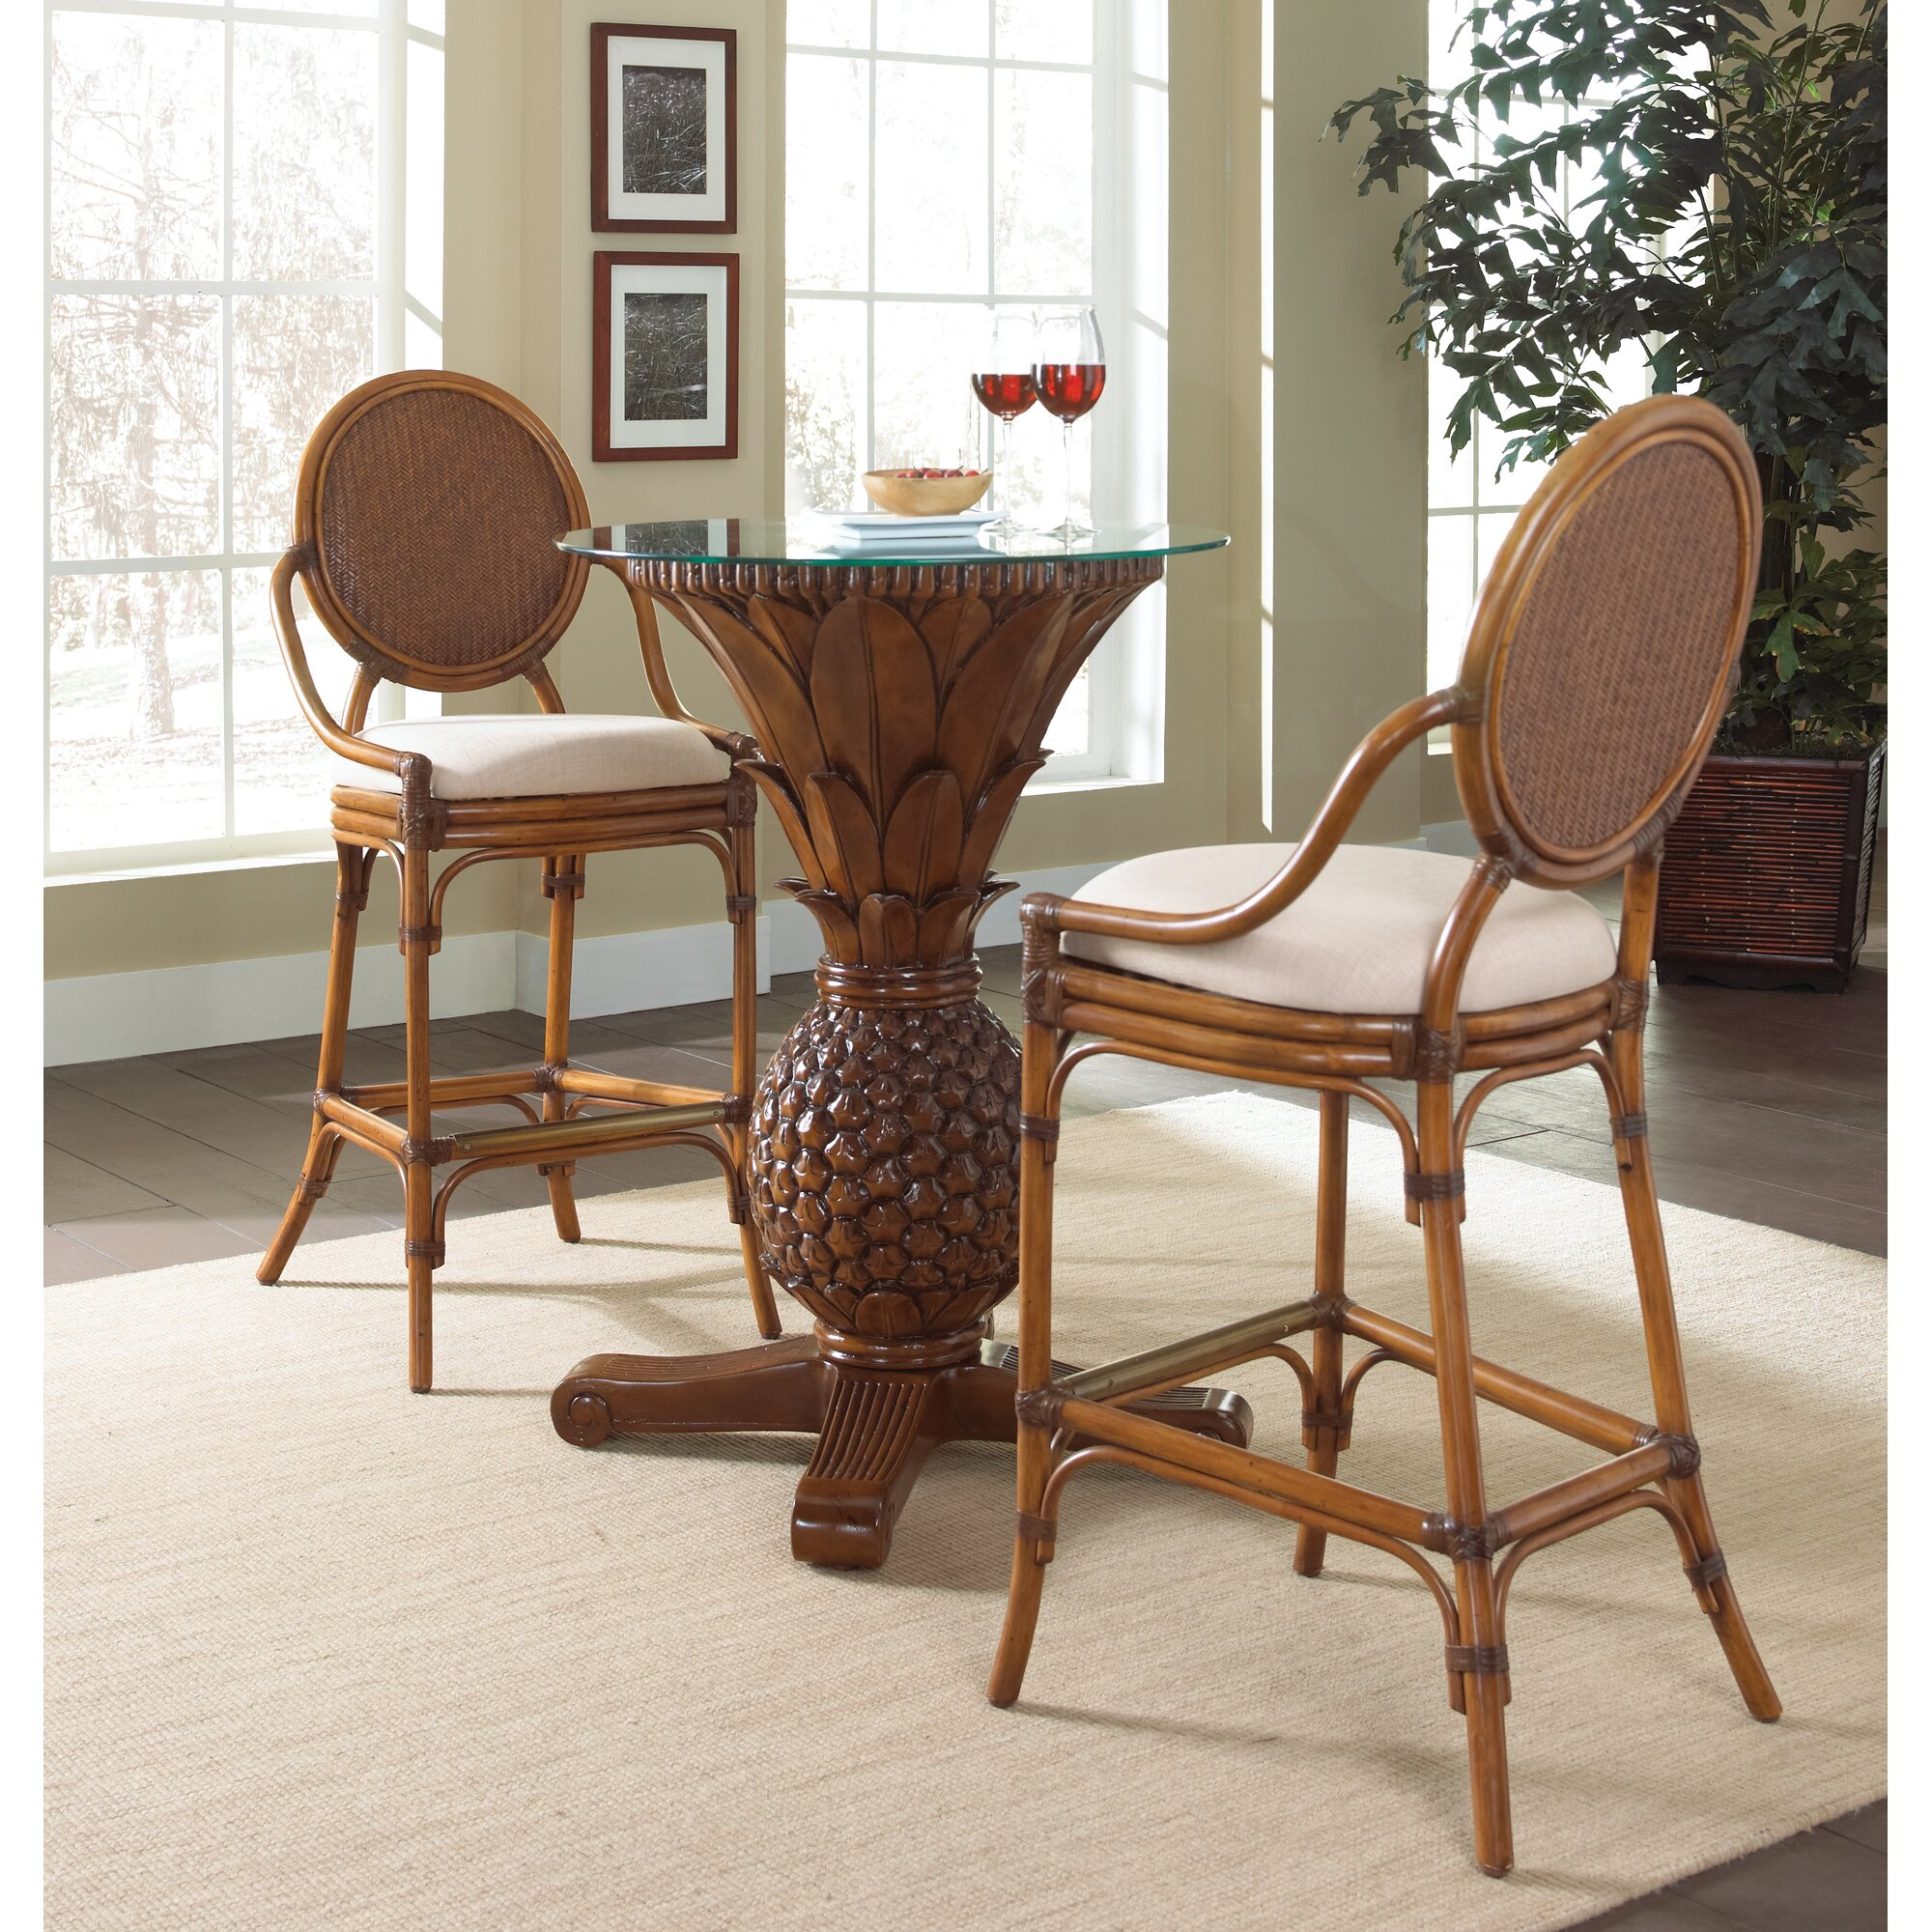 Kitchen pub table and chairs - Oyster Bay 3 Piece Pub Table Set